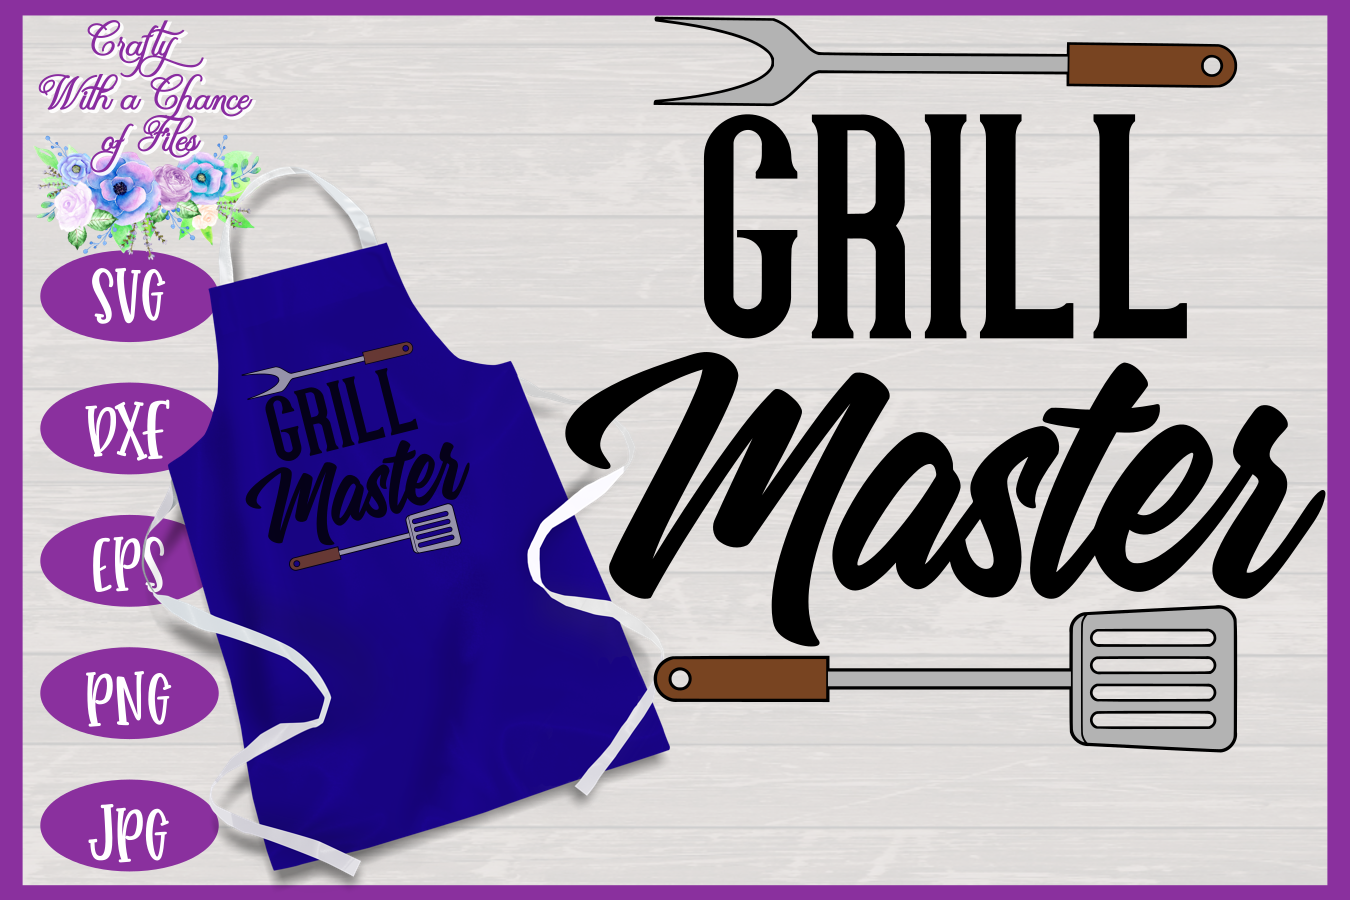 BBQ Grill Apron Bundle | Funny SVG Bundle example image 2